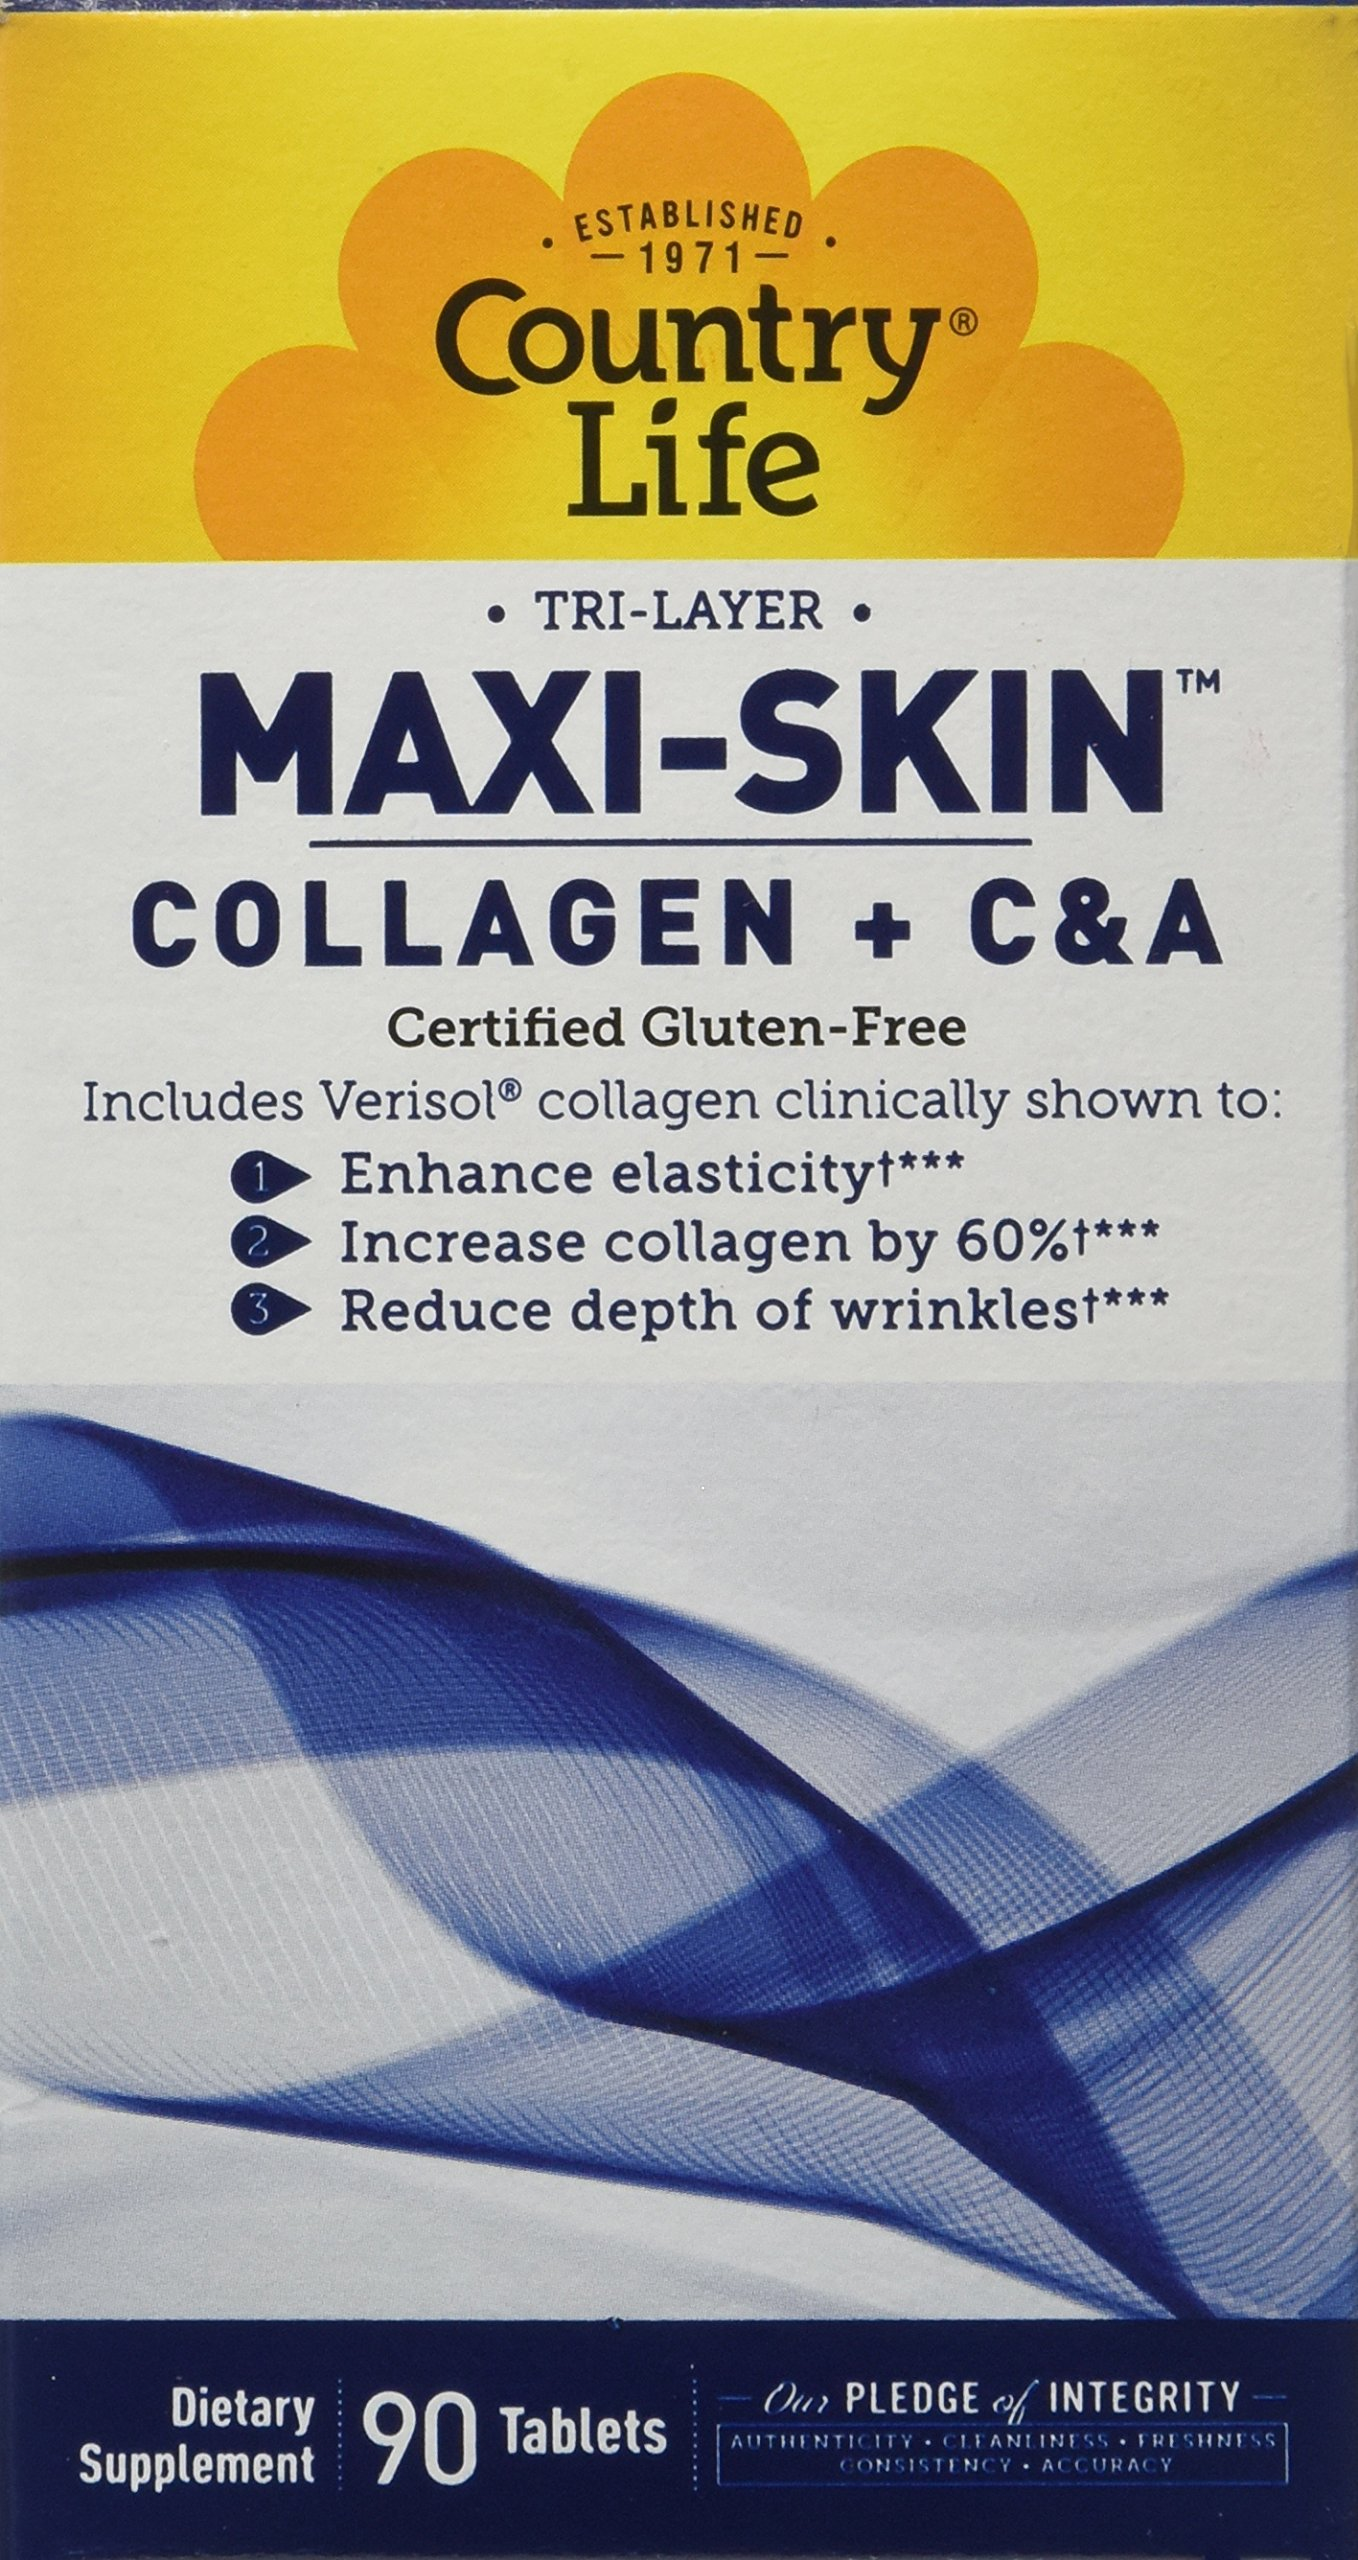 Country Life Collagen plus Vitamin C&A with Verisol - Tri-Layer Maxi-Skin - 90 Tablets